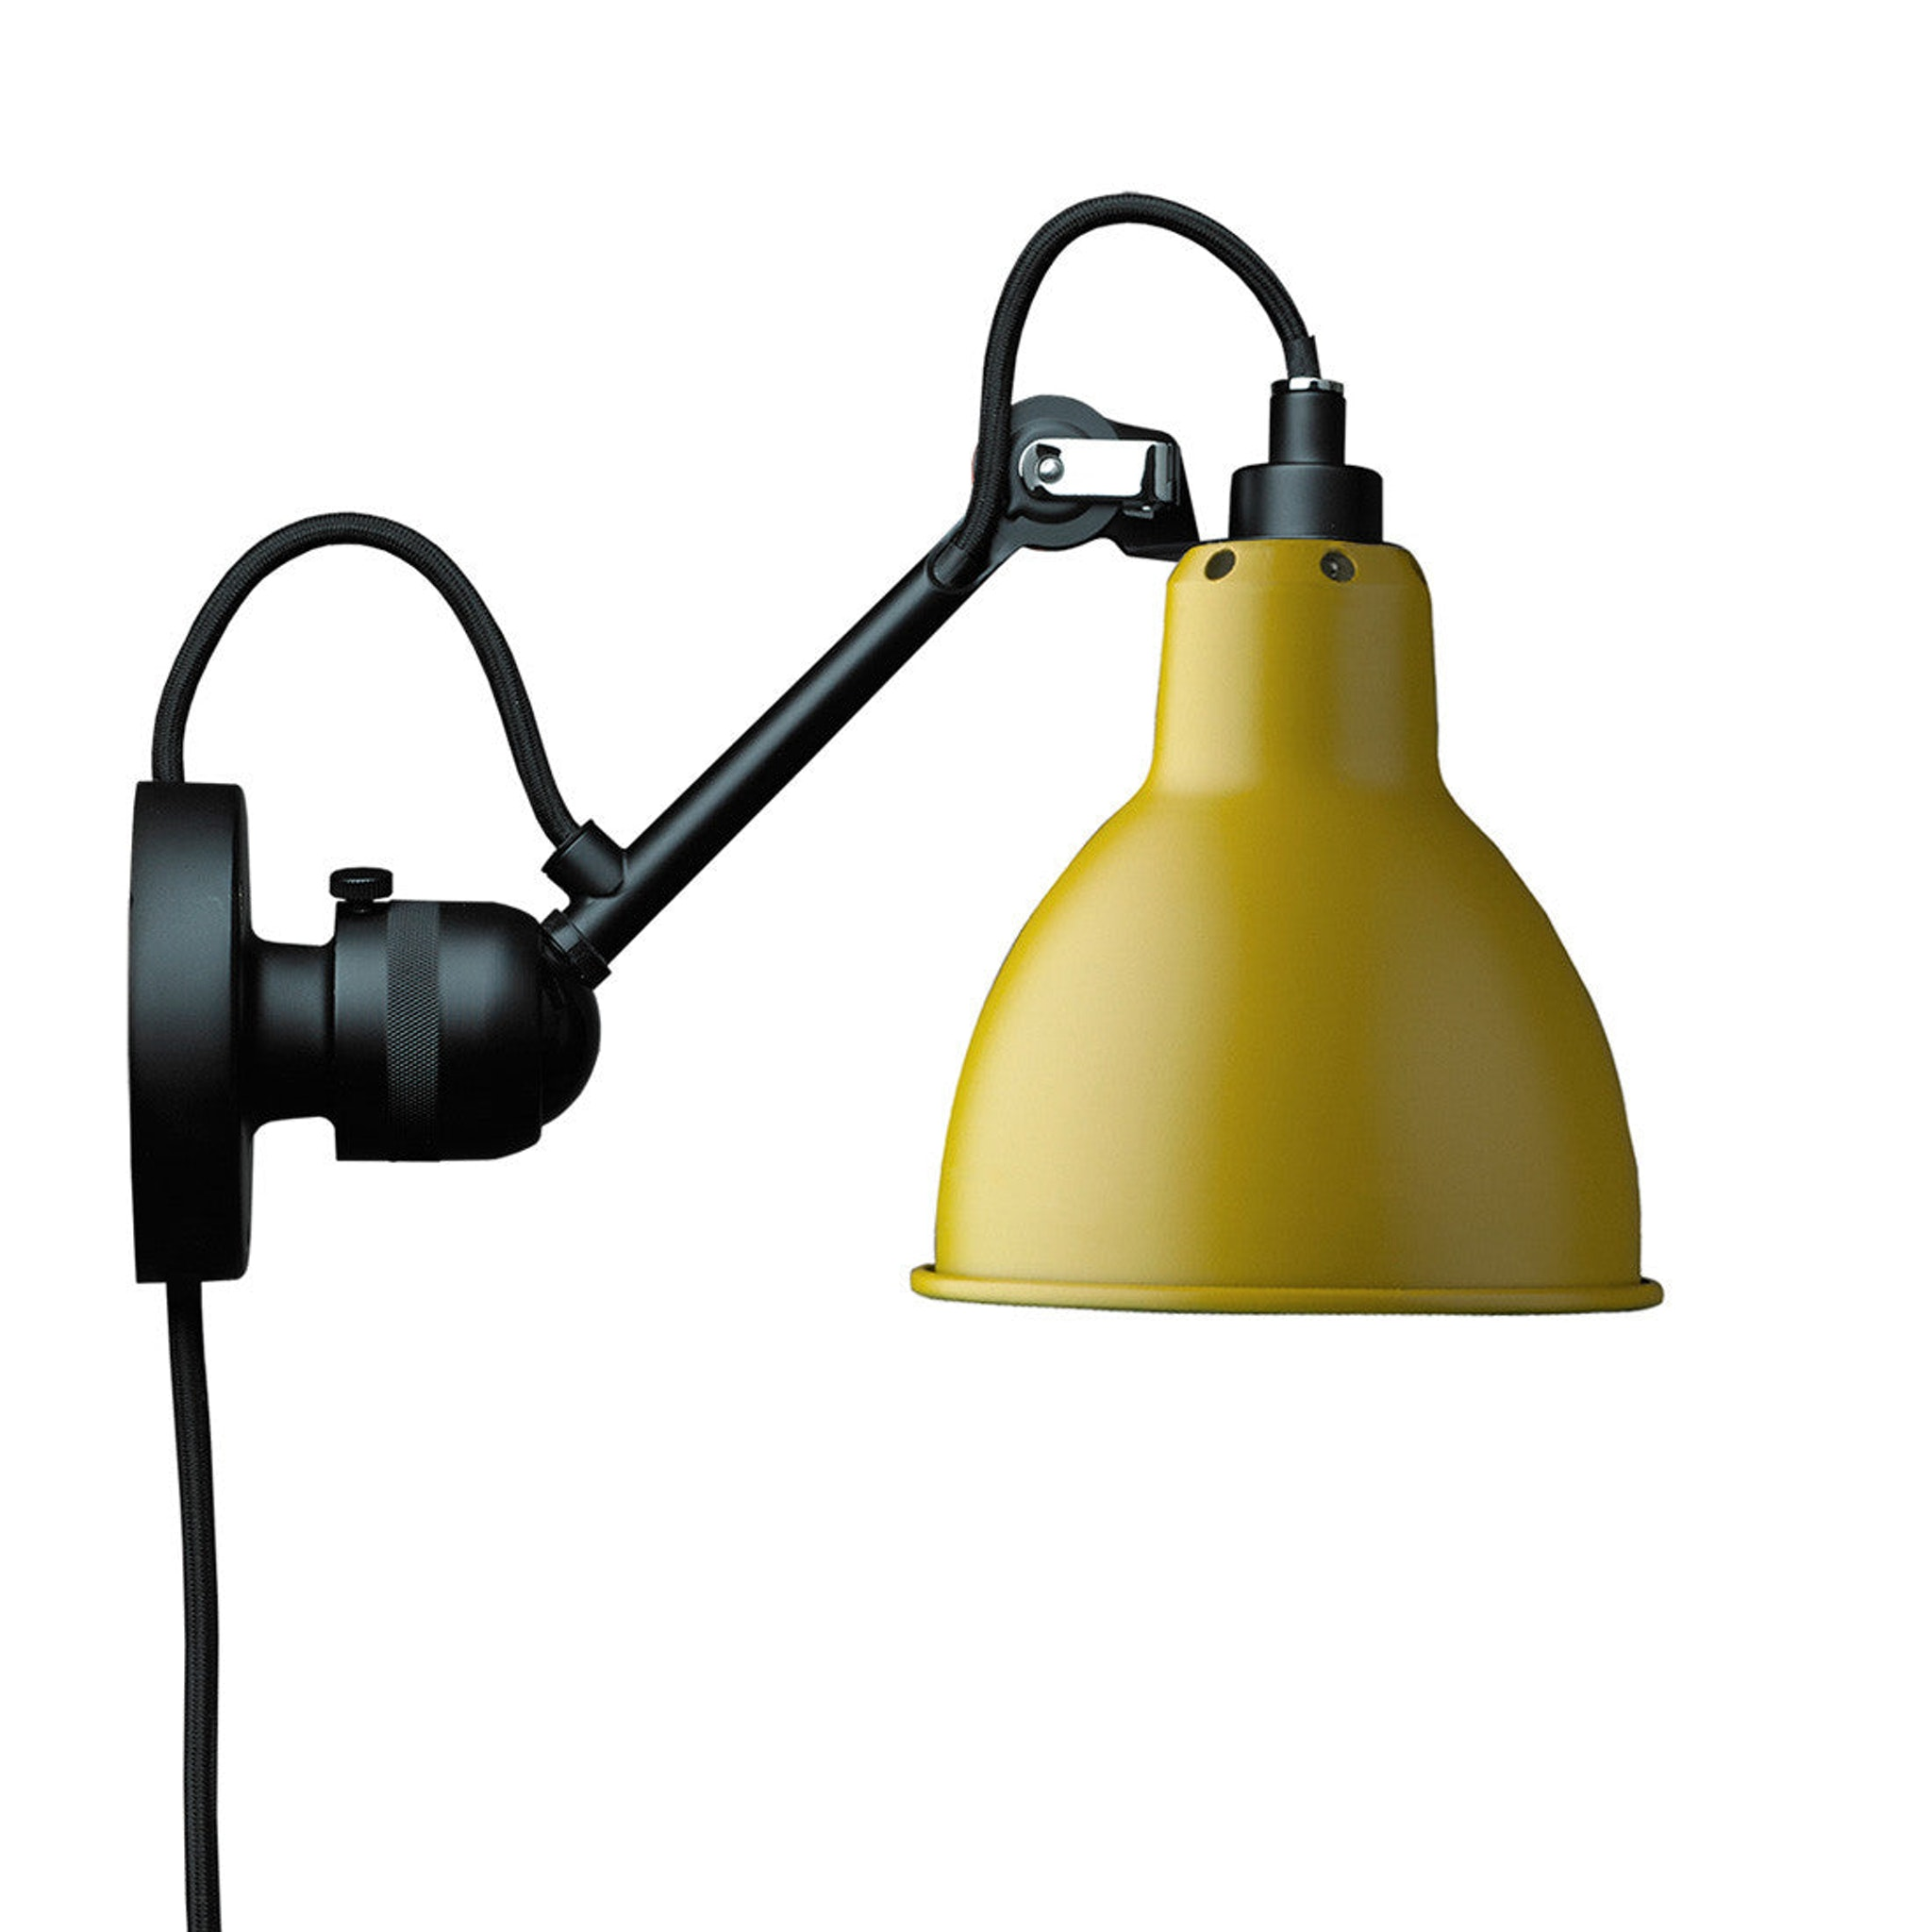 Lampe Gras 304 with switch on cable by La Lampe Gras